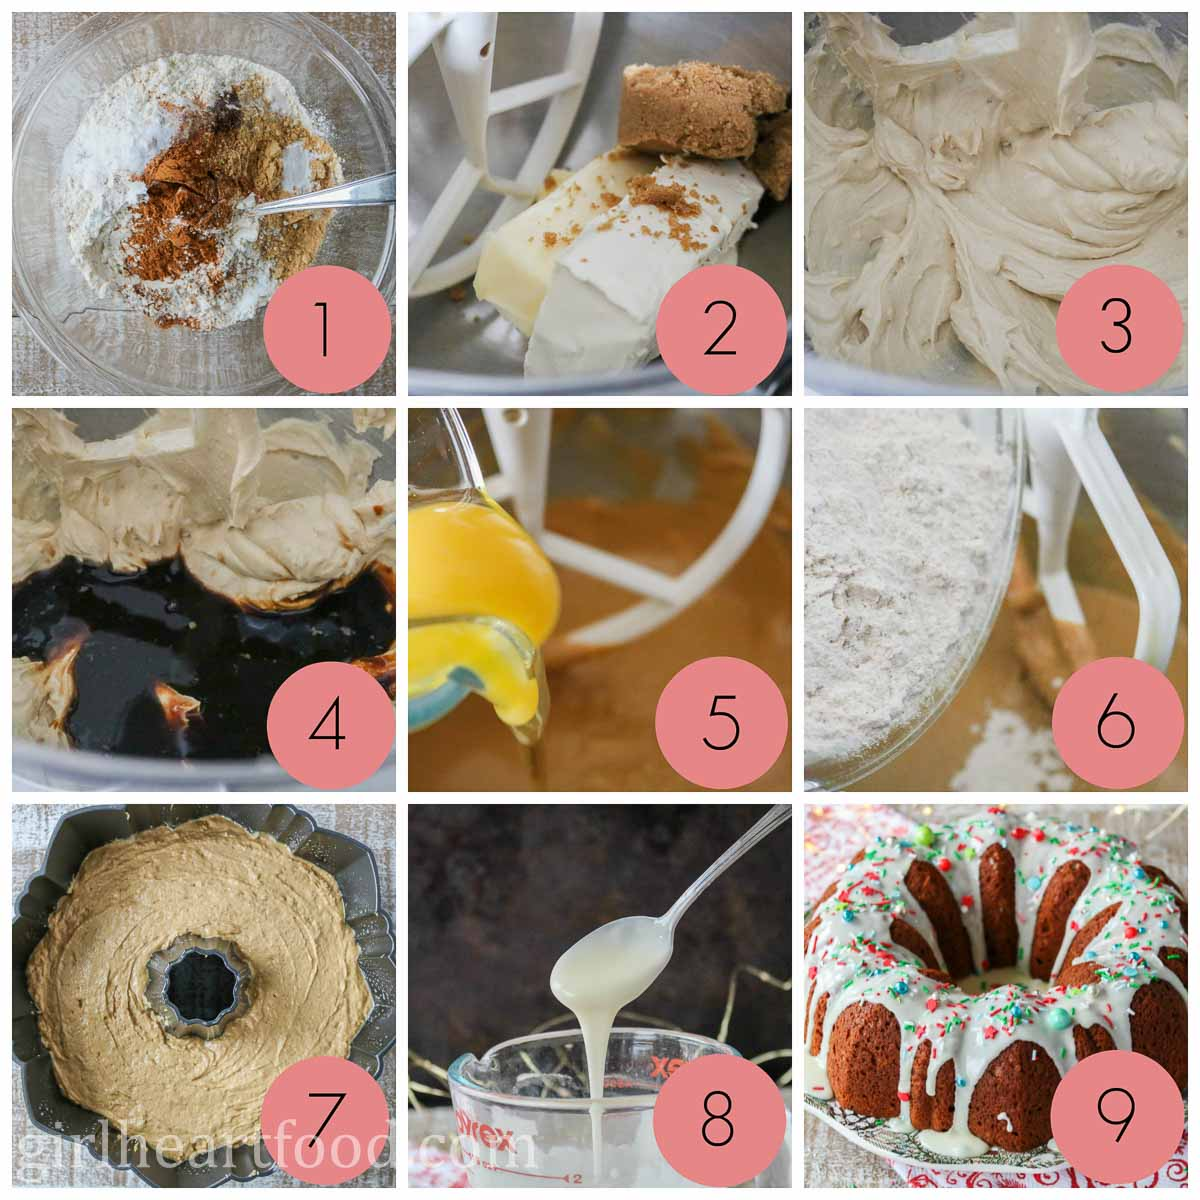 Collage of steps to make a glazed gingerbread cake.